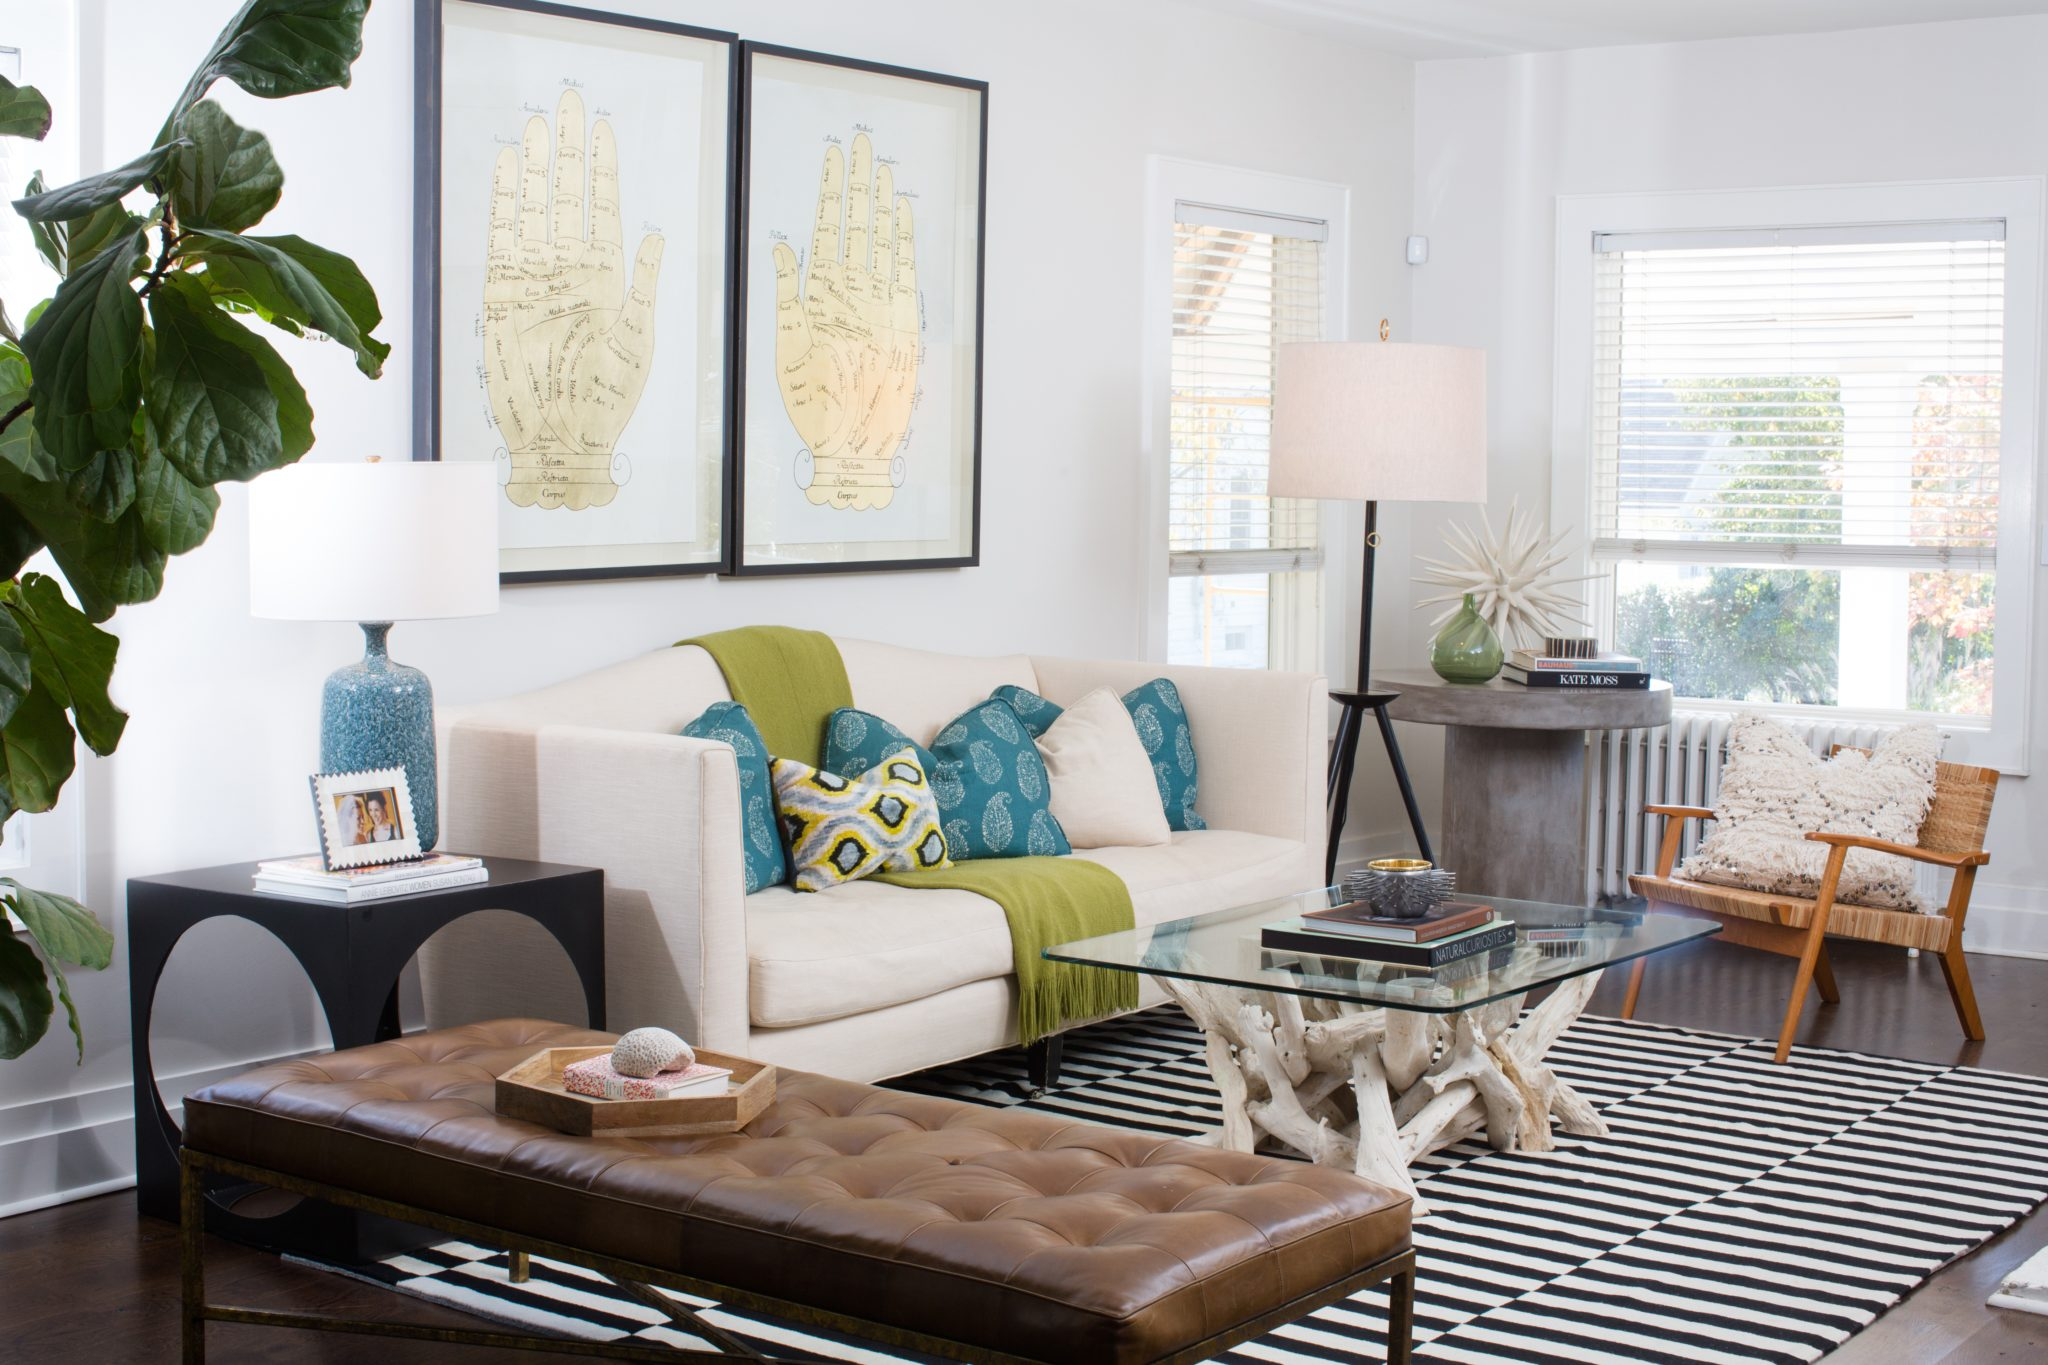 An eclectic mix of materials lends a modern organic feel to this sitting room by BOWERBIRD